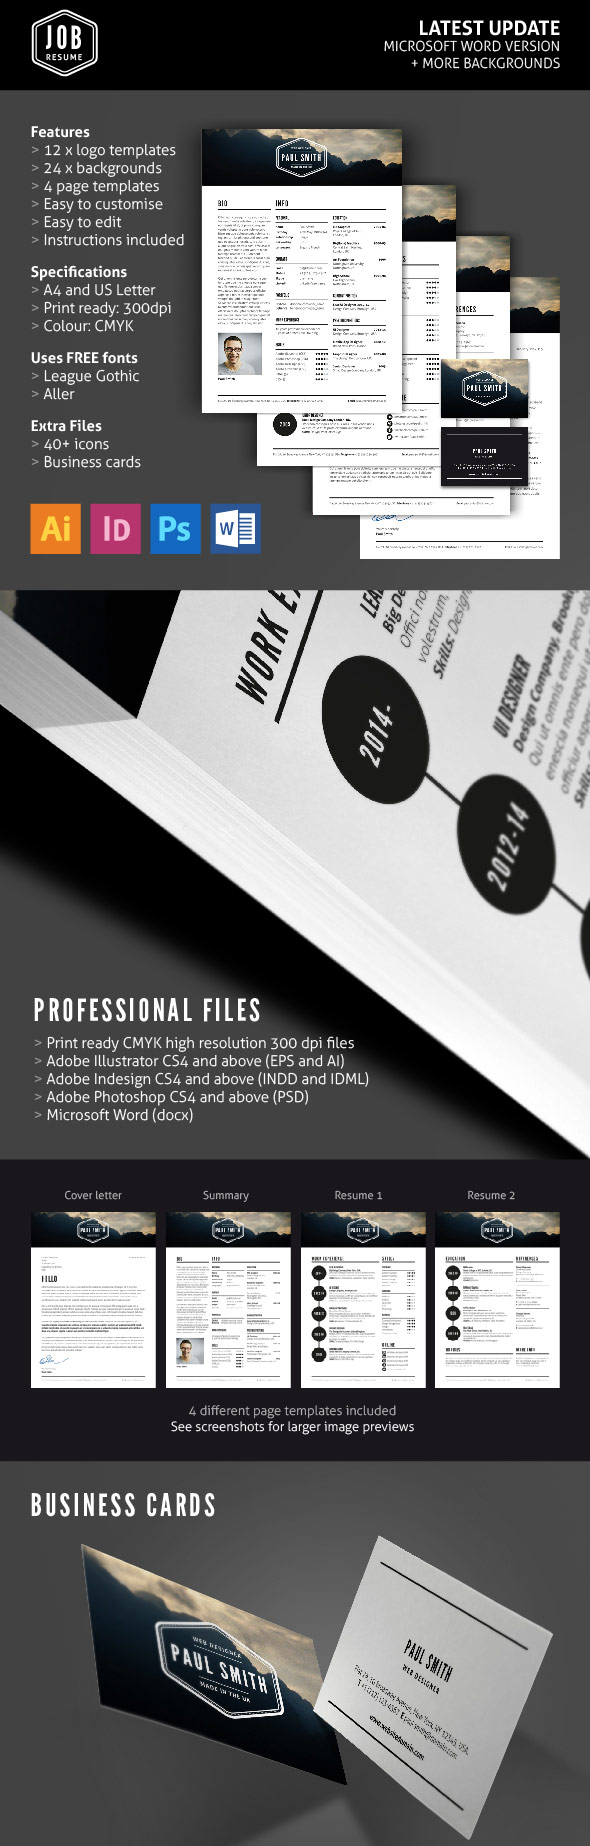 Resume Business Resume Templates 25 creative resume templates to land a new job in style template set with logos business cards